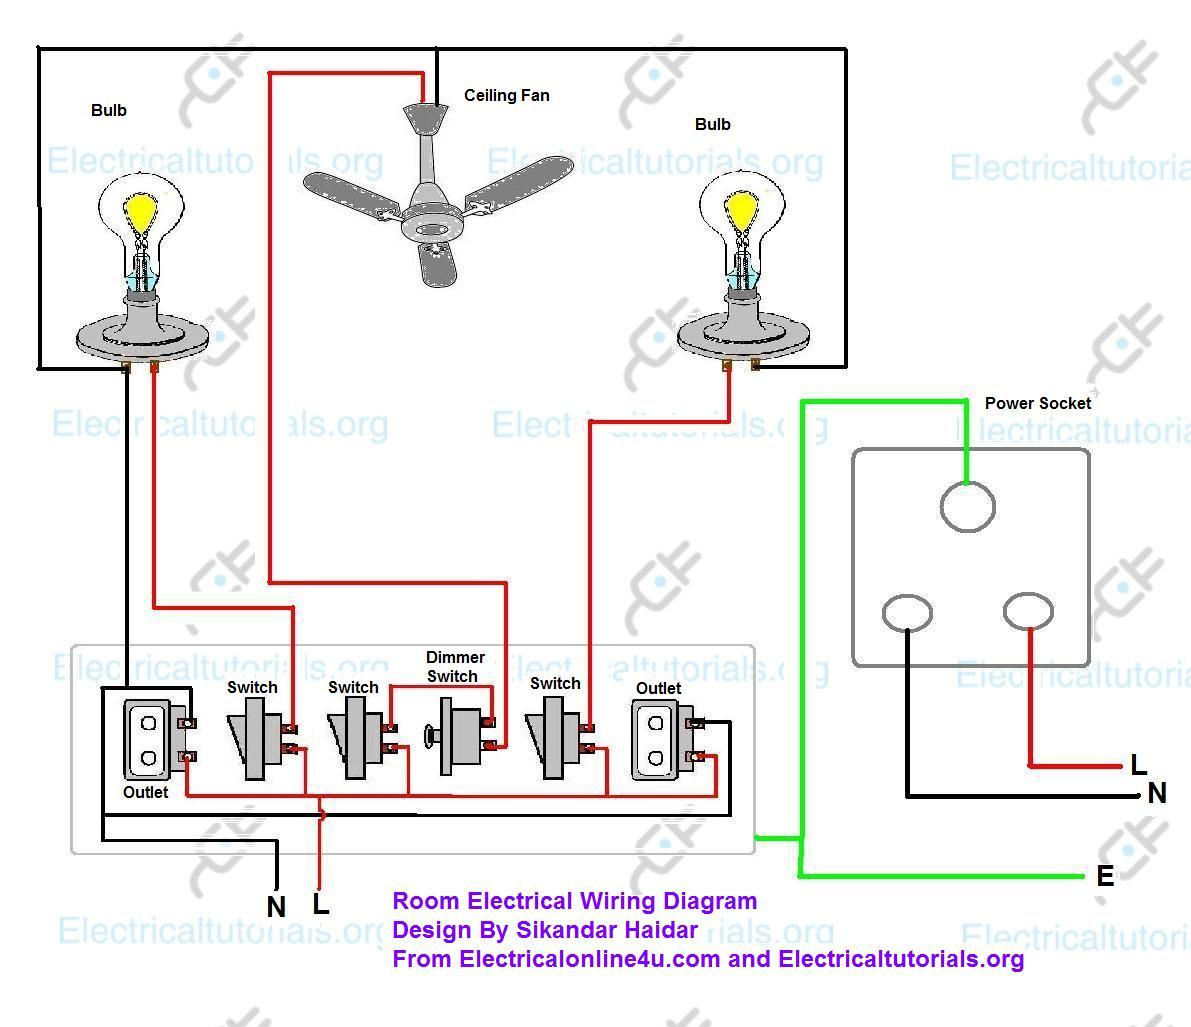 Ceiling Fan Wiring Diagram Uk from 3.bp.blogspot.com